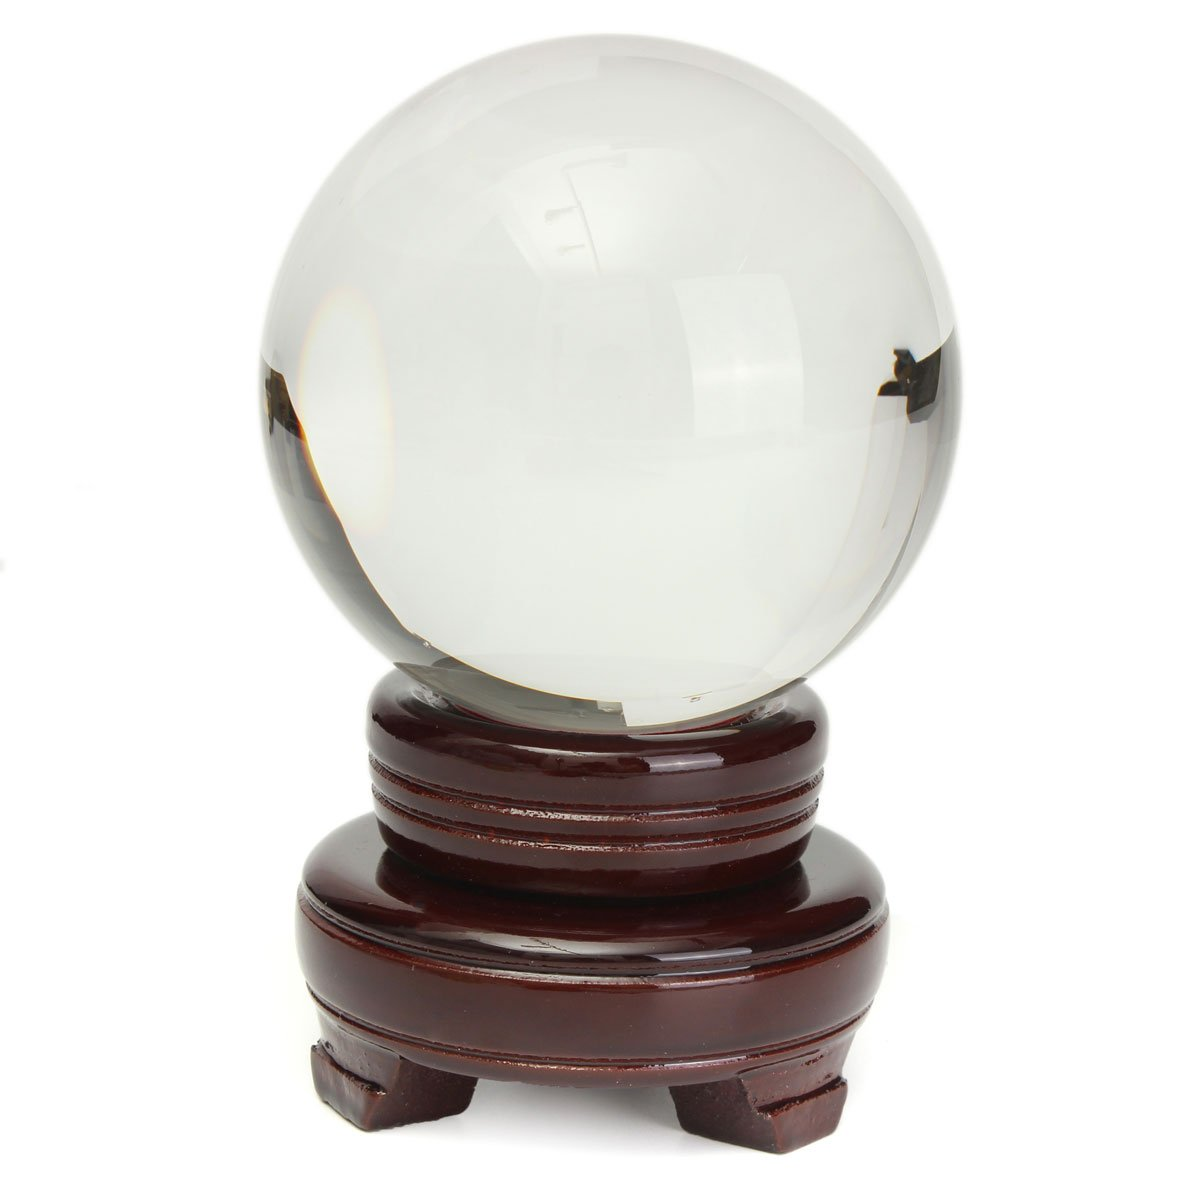 100mm Clear Crystal Ball Asian Natural Quartz Magic Healing Ball Sphere with Stand